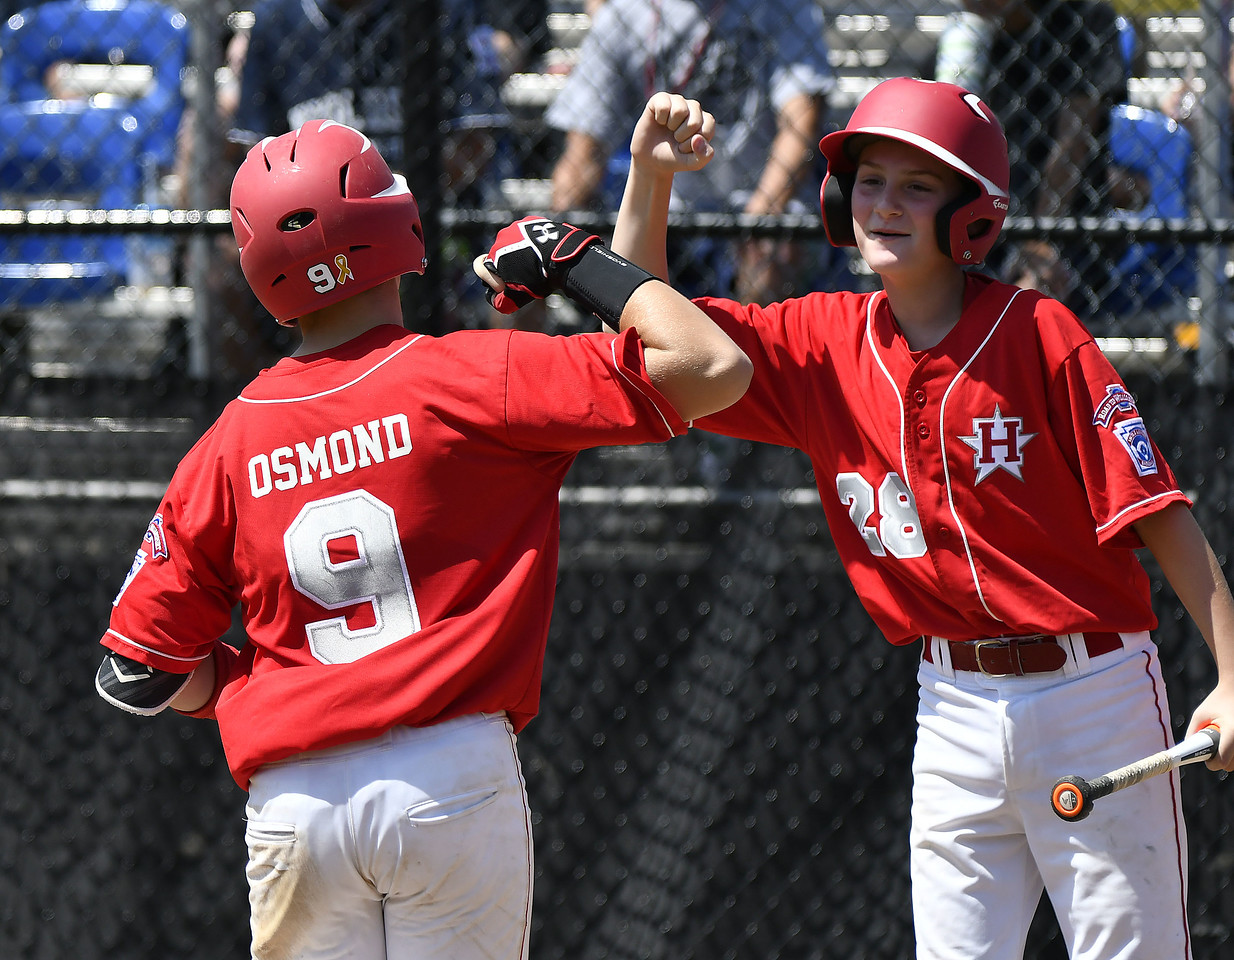 8/9/2017 Mike Orazzi | Staff New Jersey's JR Osmond (9) after his home run during the Eastern Regional Little League Tournament in Bristol Wednesday afternoon.